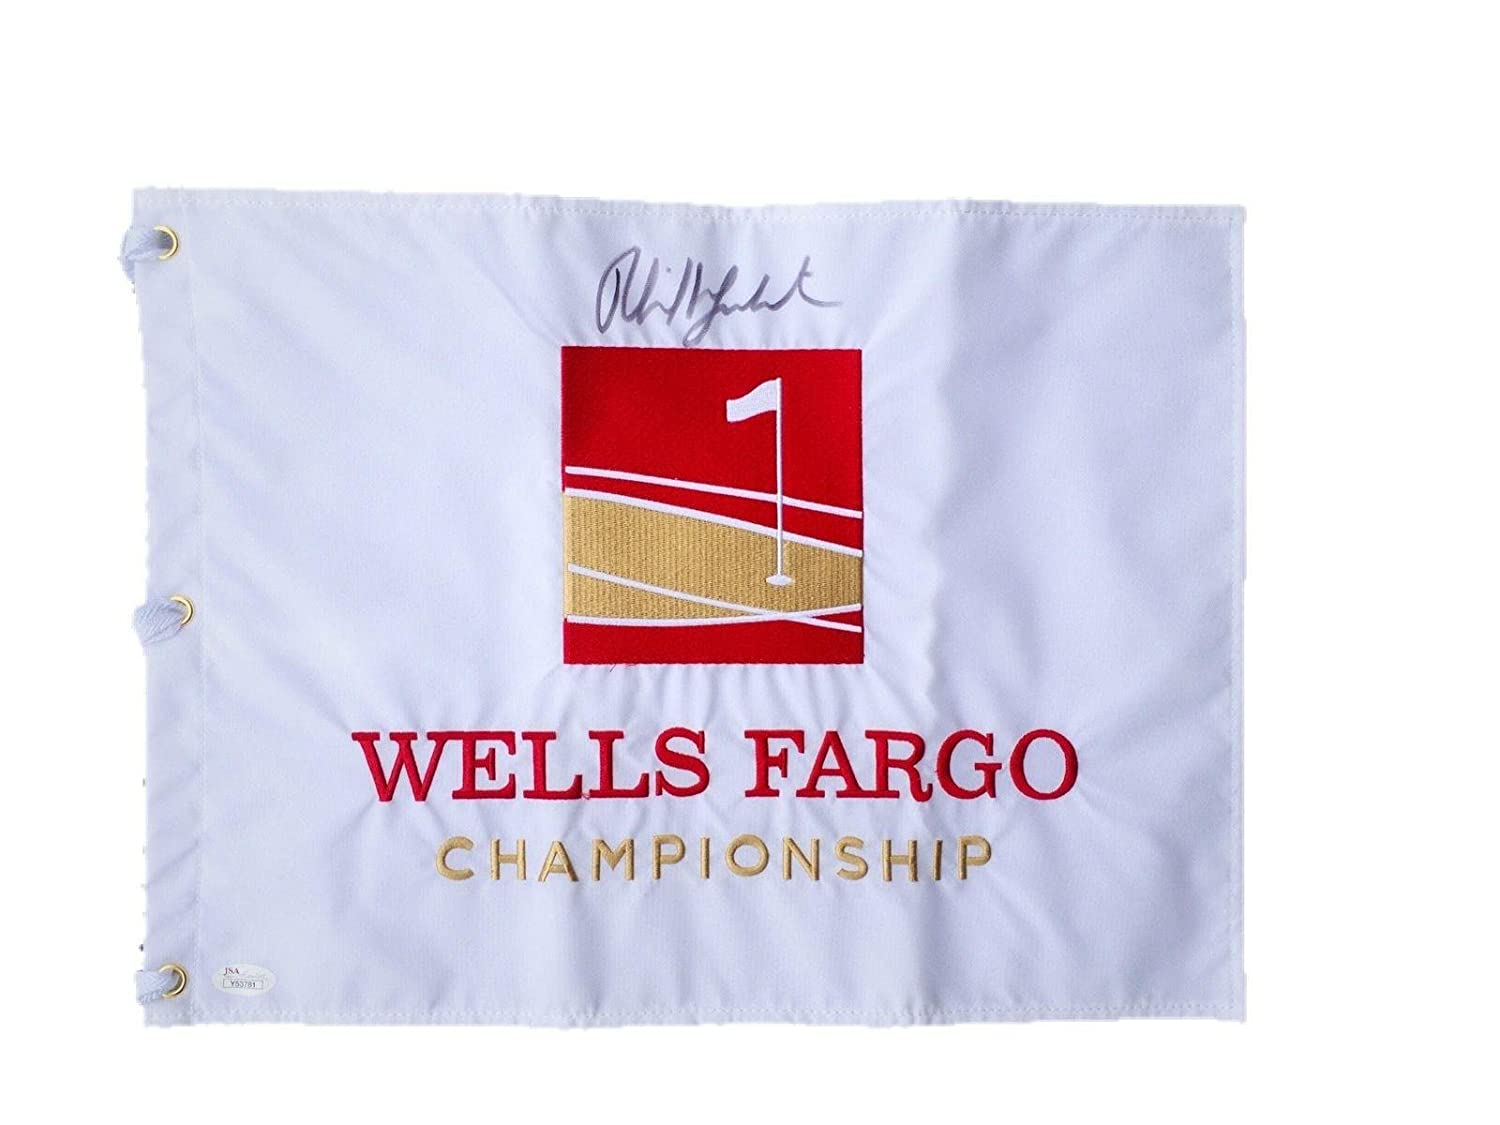 phil mickelson official signed wells fargo championship pin flag